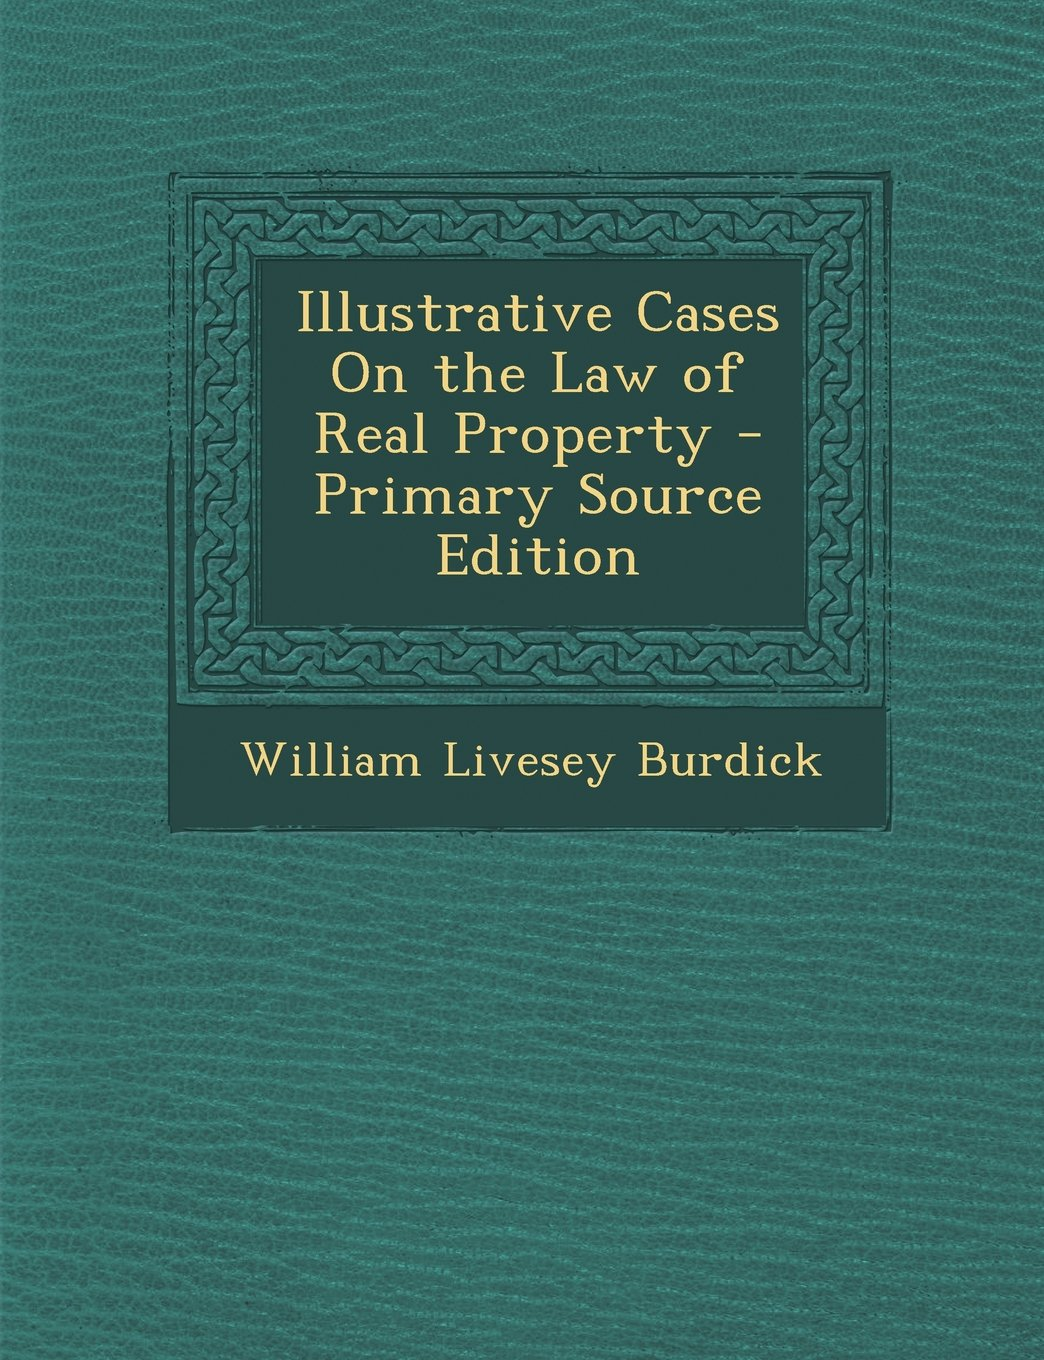 Download Illustrative Cases On the Law of Real Property PDF